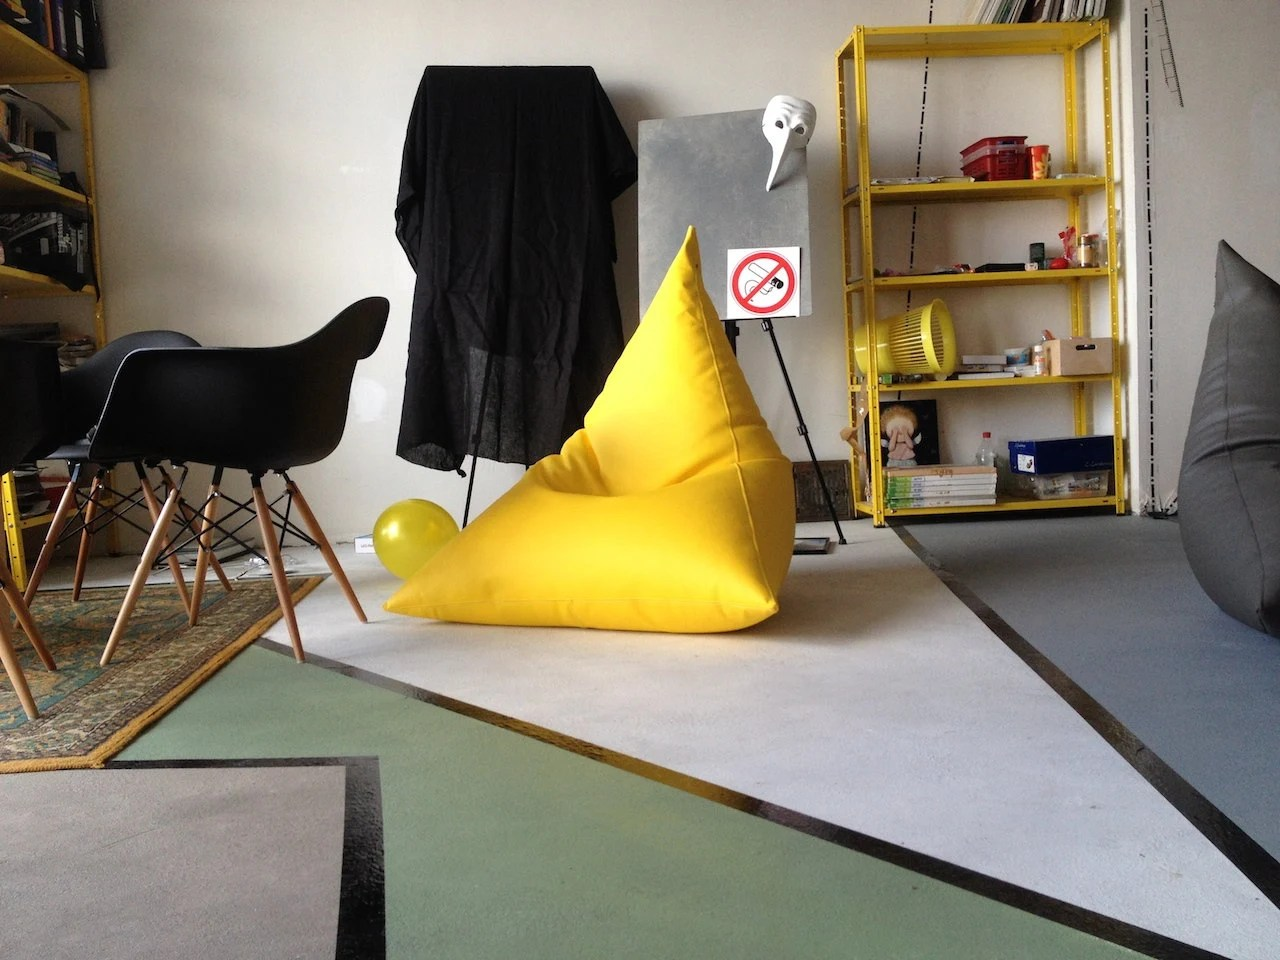 Where Can I Buy A Bean Bag Chair Bean Bag Chairs Pyramid Bag Chair Pyramid Yellow Bean Bag